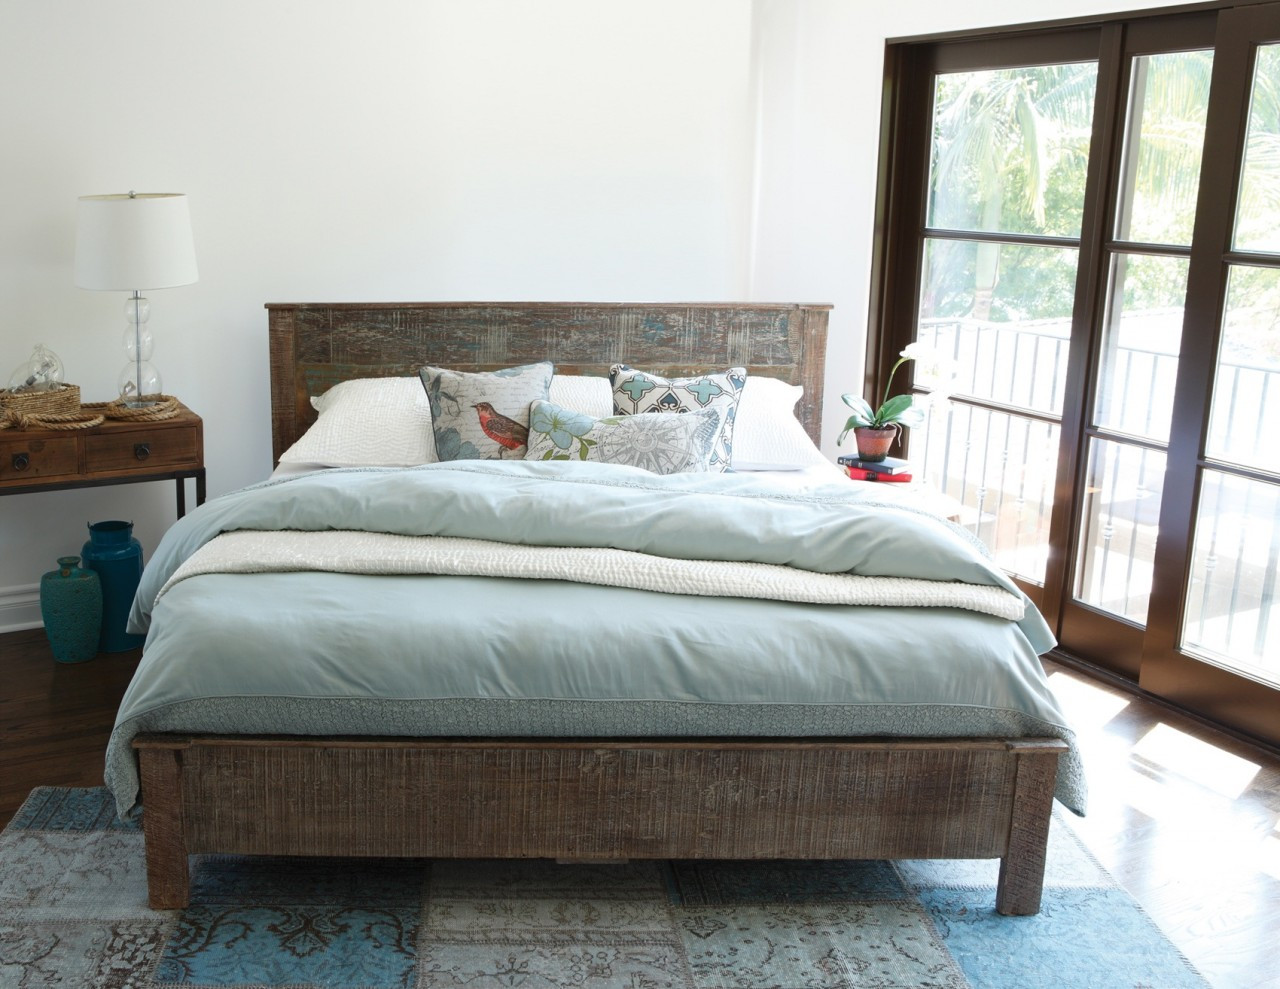 hampton reclaimed teak wood king size bed frame - Wood King Size Bed Frame